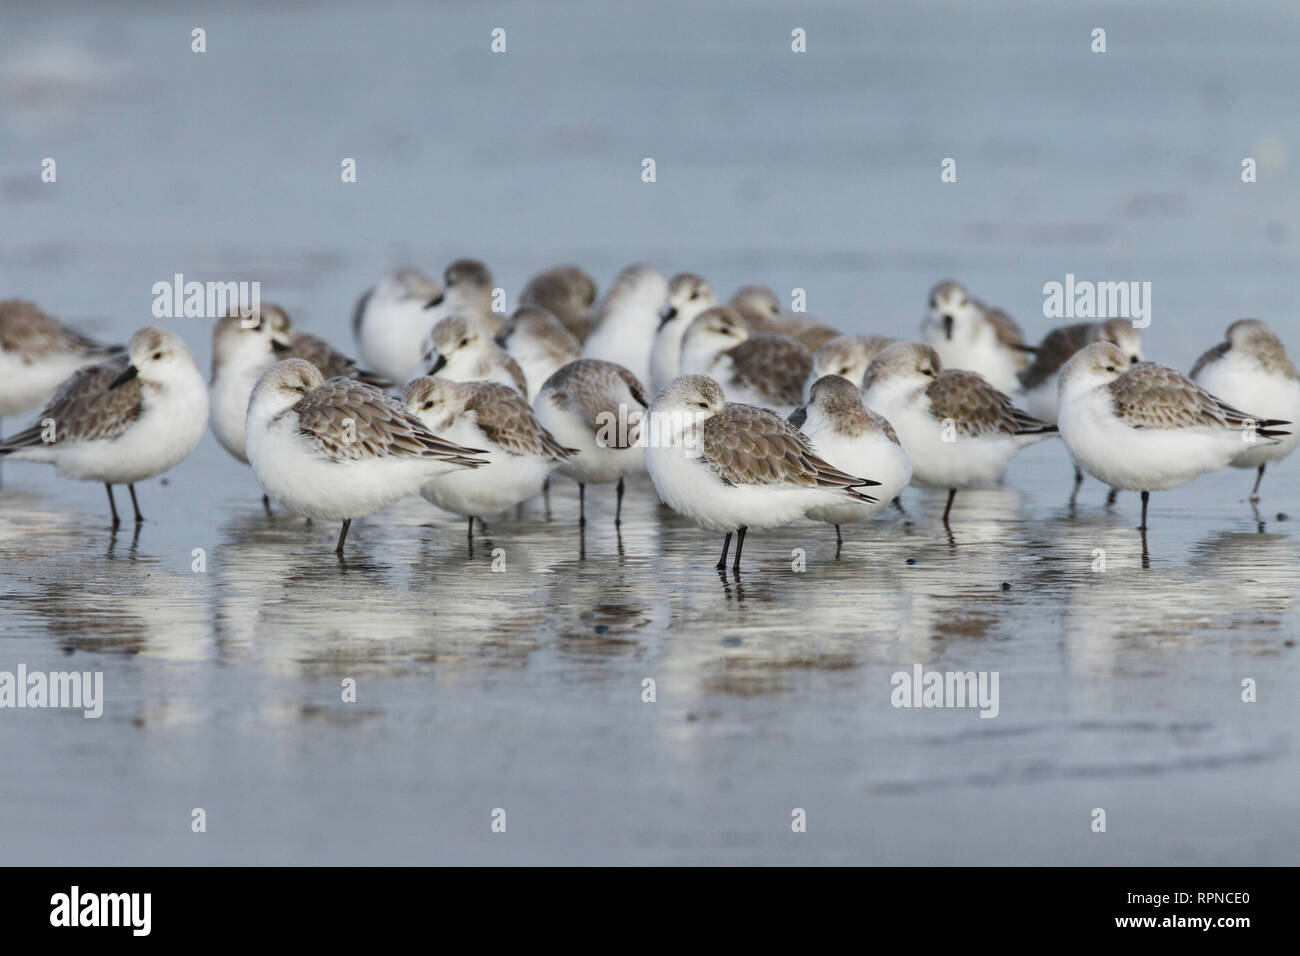 Zoologia / animali, uccelli / bird (aves), Sanderling, Calidris alba, Germania, Additional-Rights-Clearance-Info-Not-Available Immagini Stock